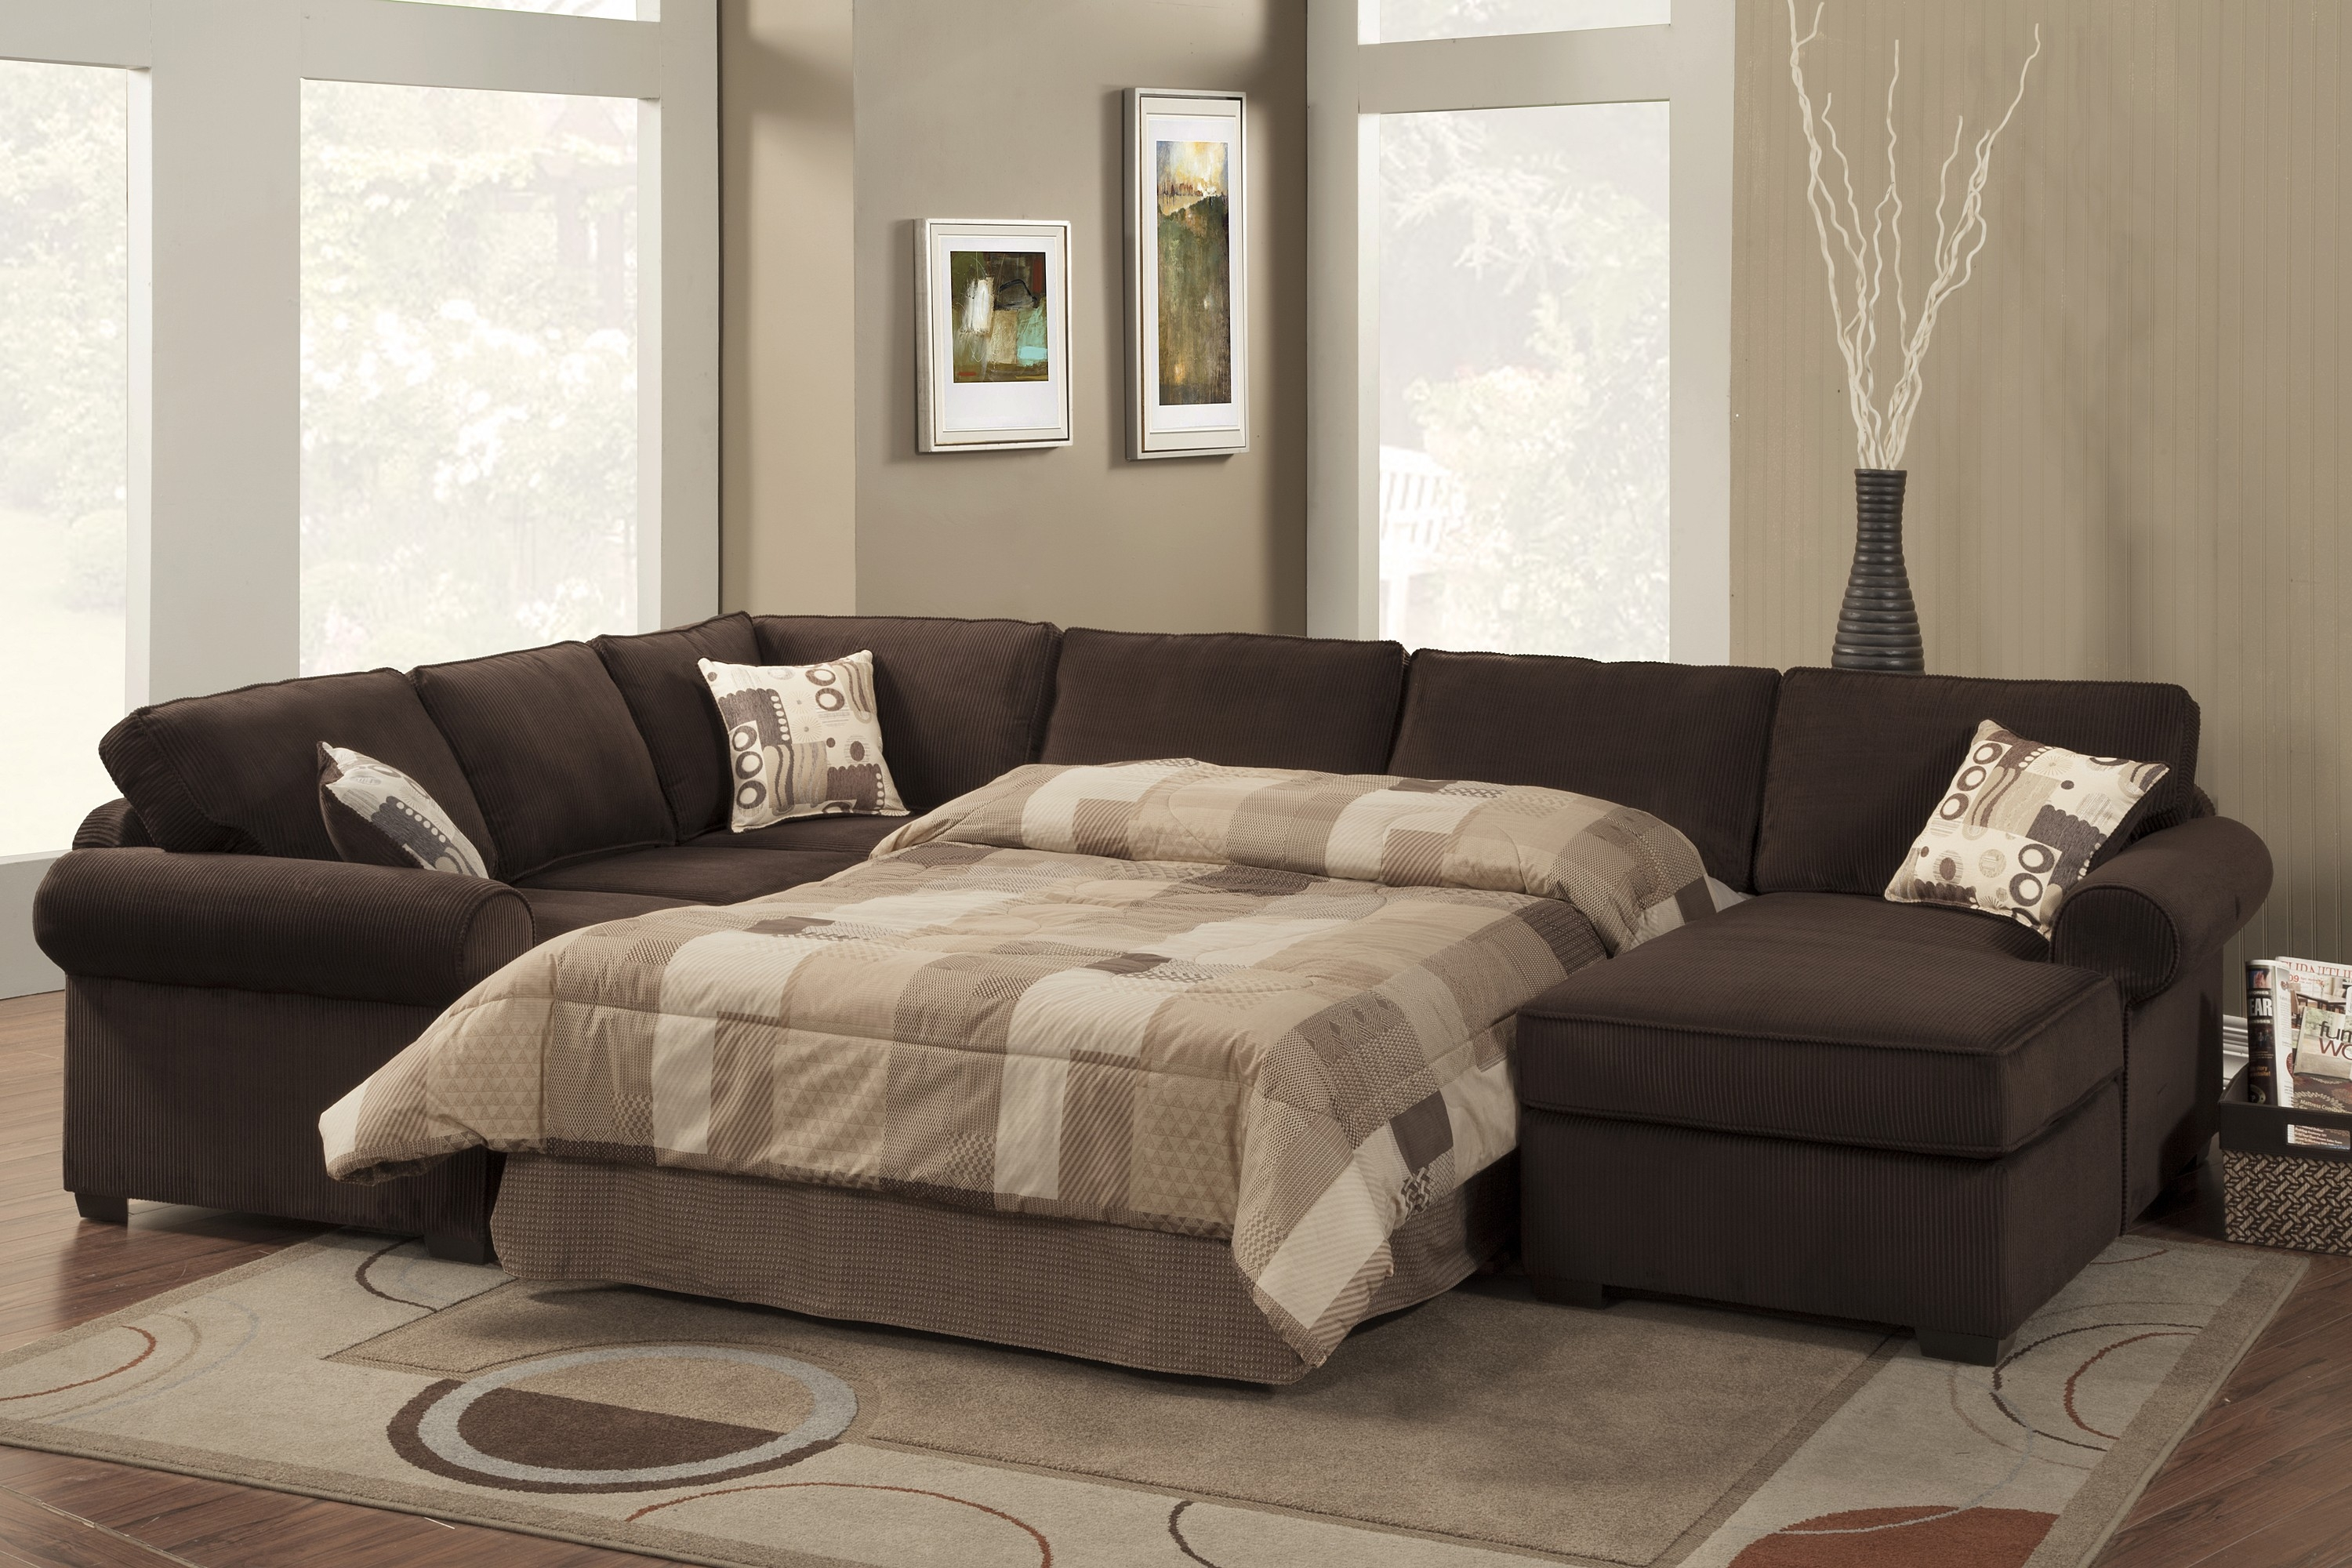 Popular Photo of 3 Piece Sectional Sleeper Sofa